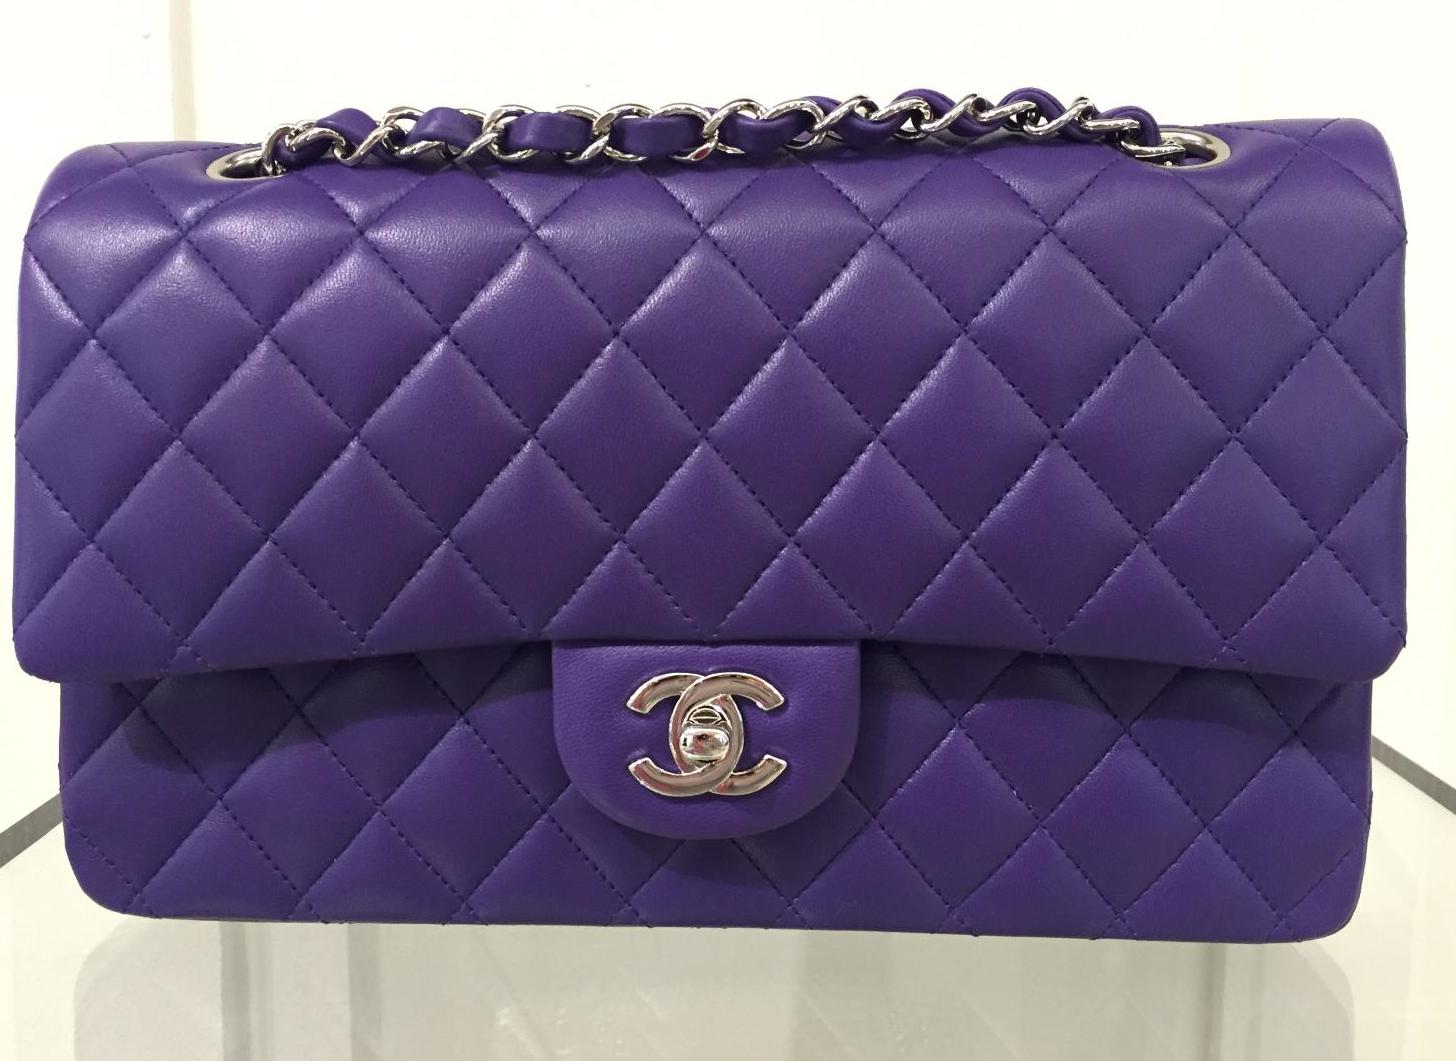 c033cf2fc3c9 Chanel Cruise 2016 Classic Flap Bag Colors | Spotted Fashion